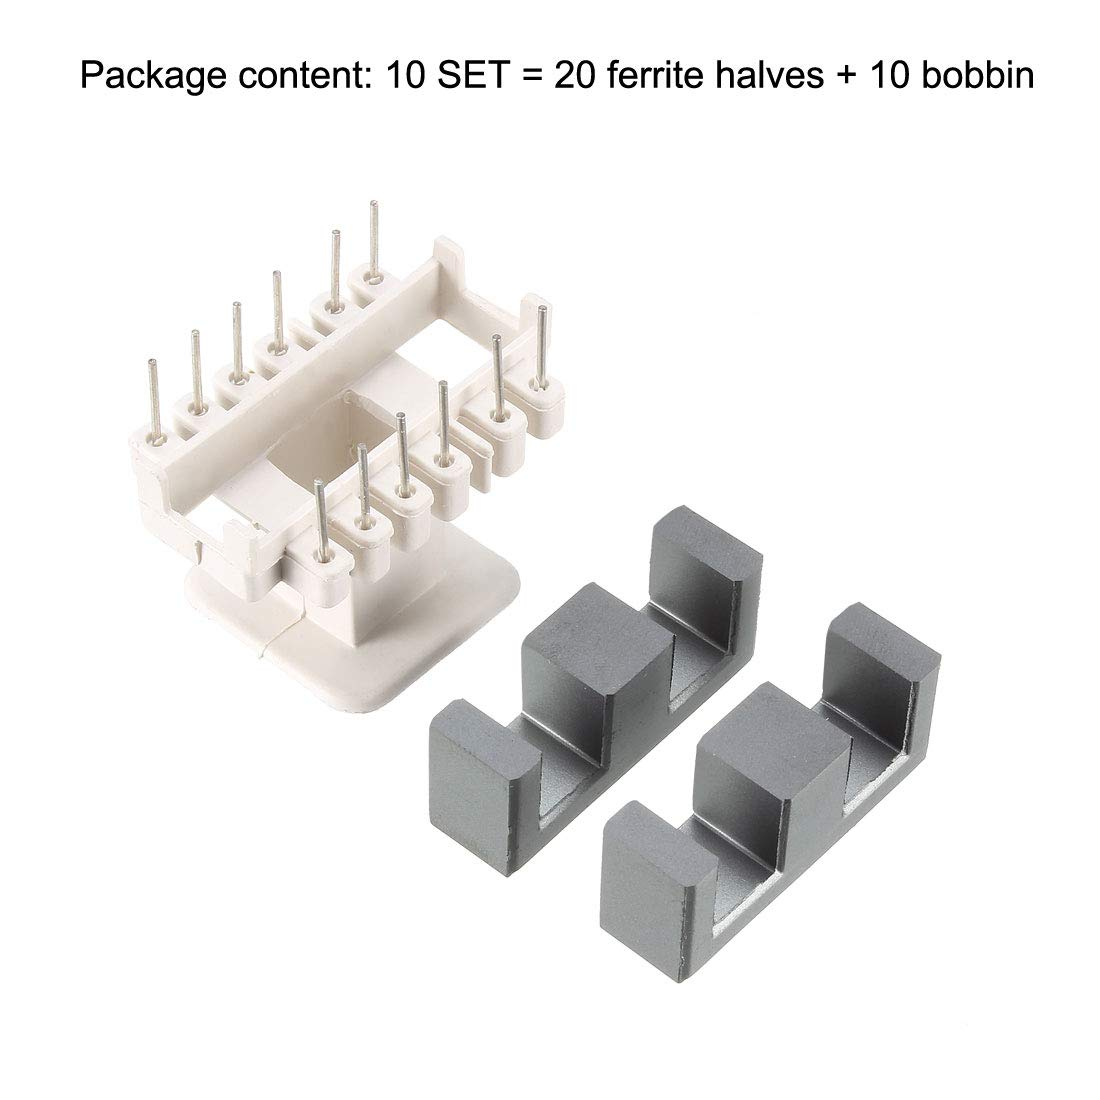 10 Sets EE35 6 with 6pin Transformer Bobbin PC40 Ferrite Core Vertical 20 Halves of ferrite and 10 Coil